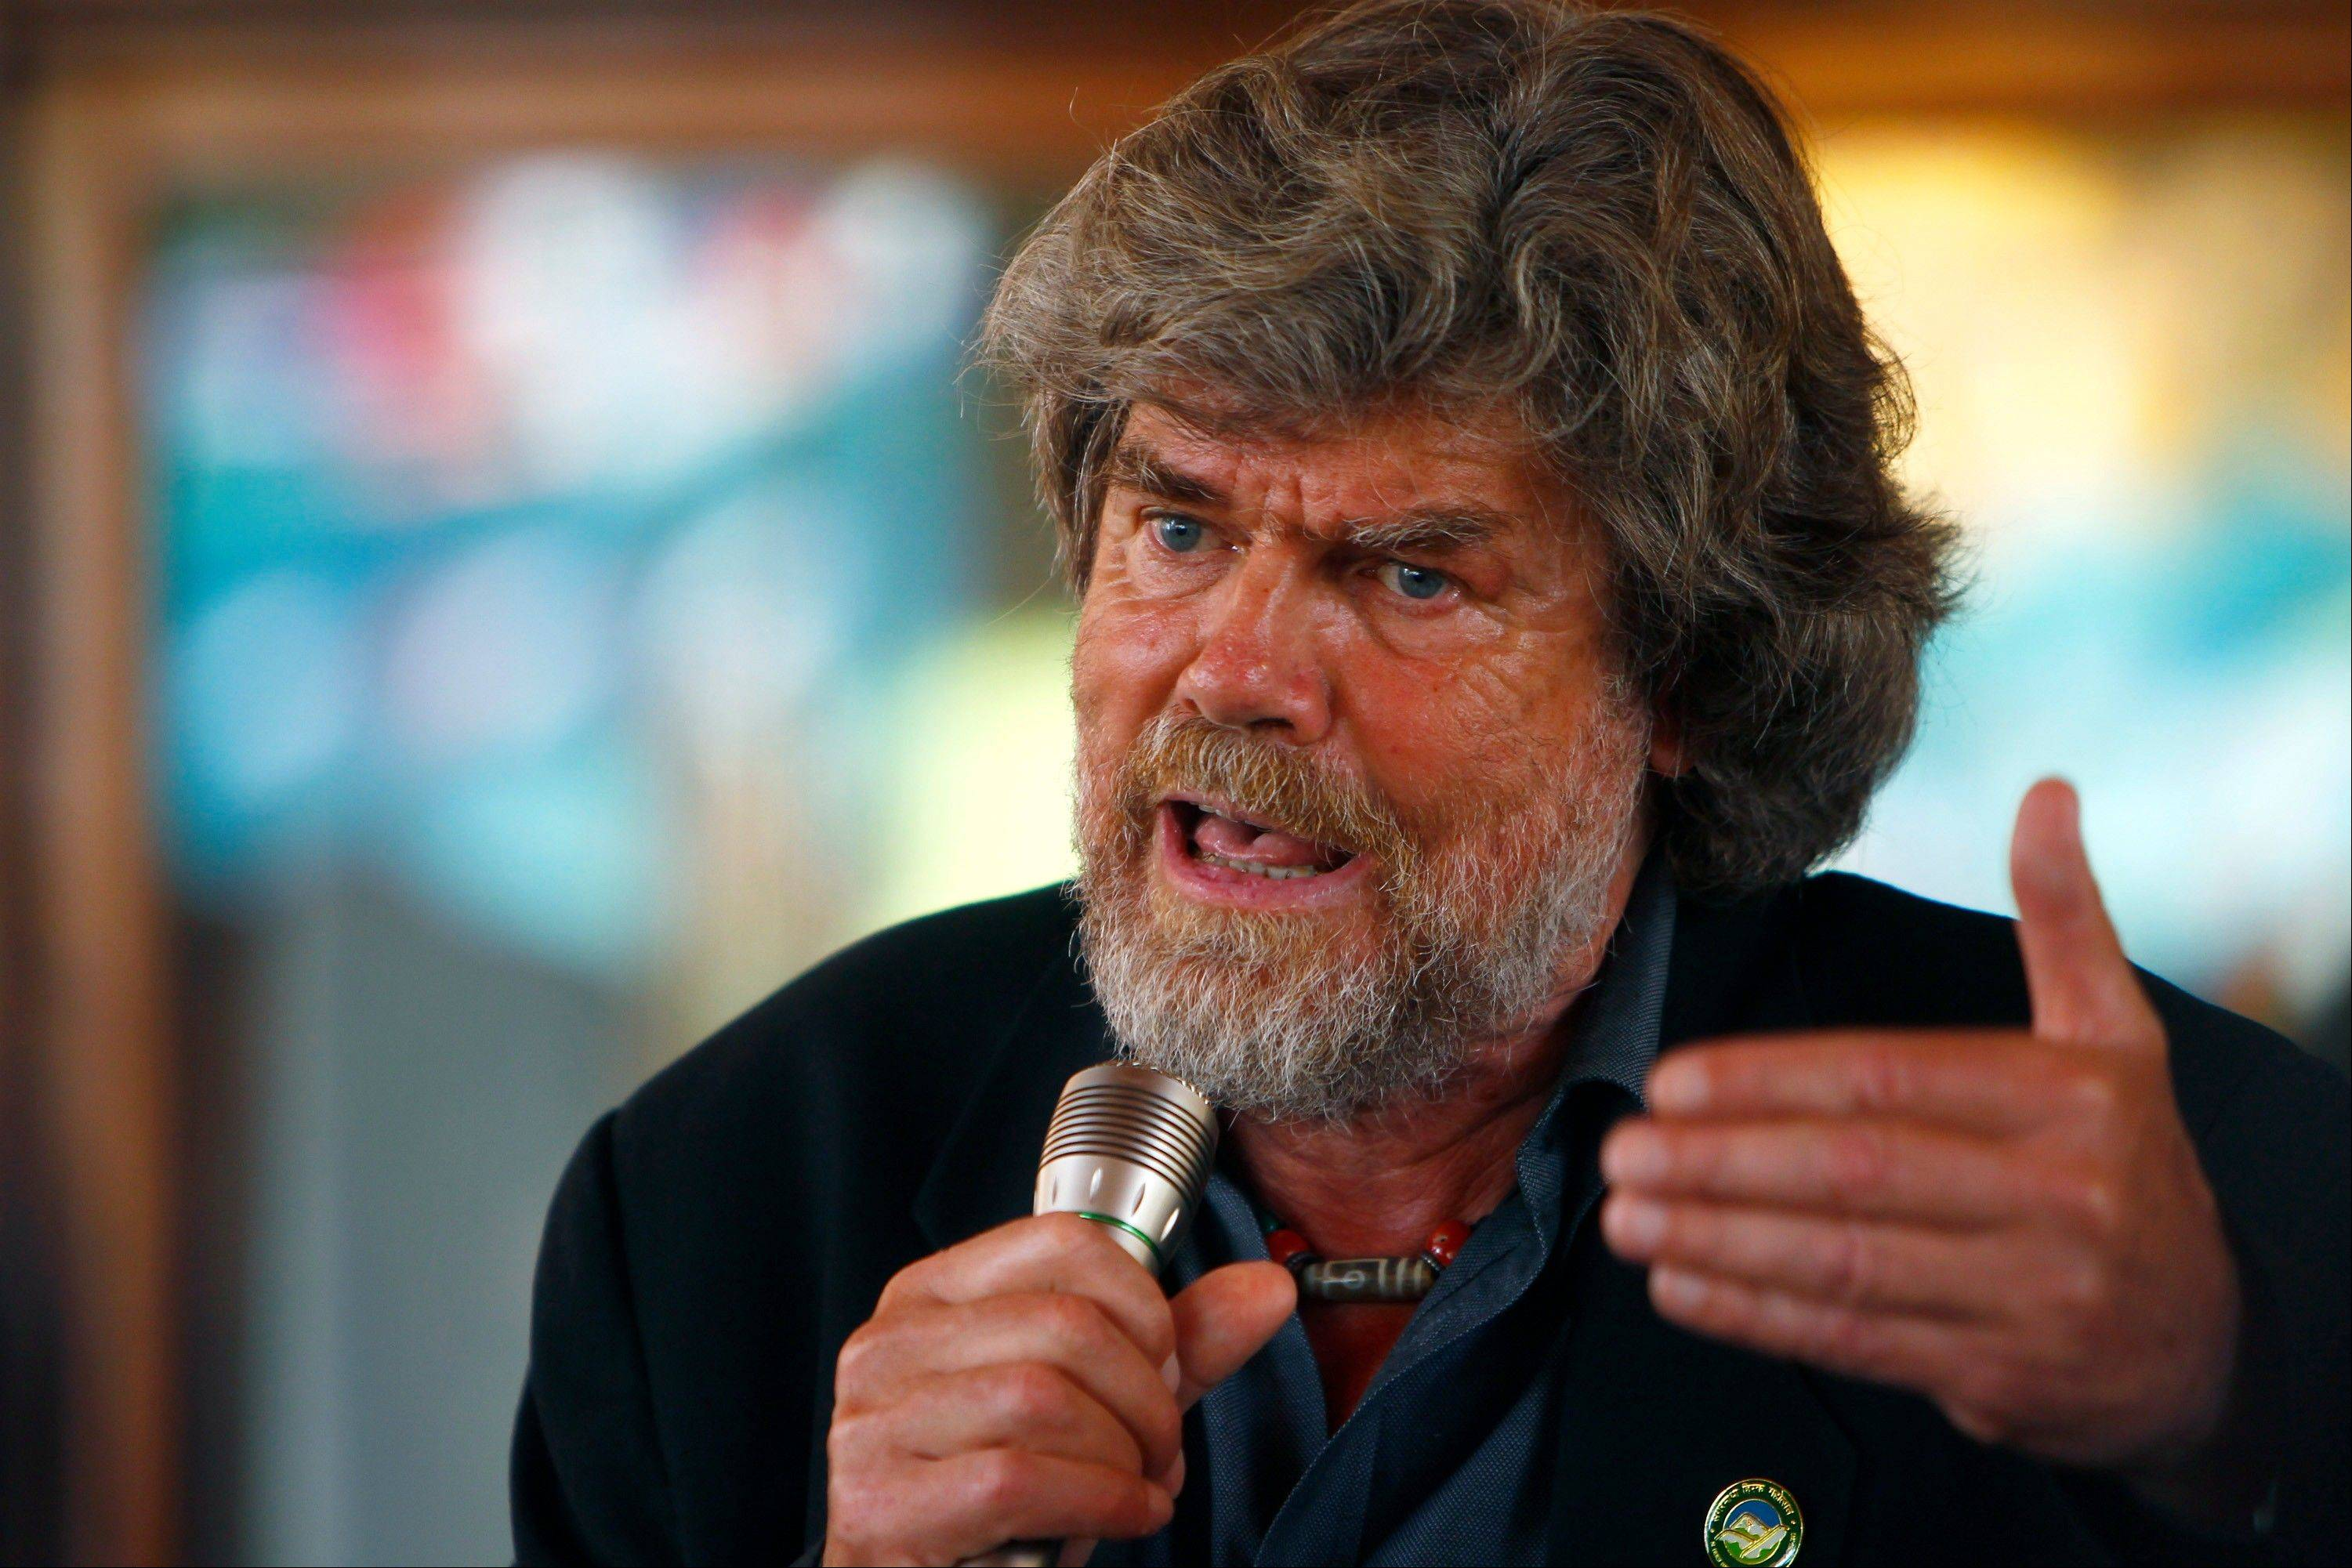 Italian Reinhold Messner, the first climber to scale Everest without using bottled oxygen and the first person to climb all of the world's 14 highest peaks, speaks at a function to mark the 60th anniversary of the conquest of Mount Everest at the British Embassy, in Katmandu, Nepal, Wednesday, May 29, 2013. Nepal celebrated the anniversary on Wednesday by honoring climbers who followed in the footsteps of Edmund Hillary and Tenzing Norgay.